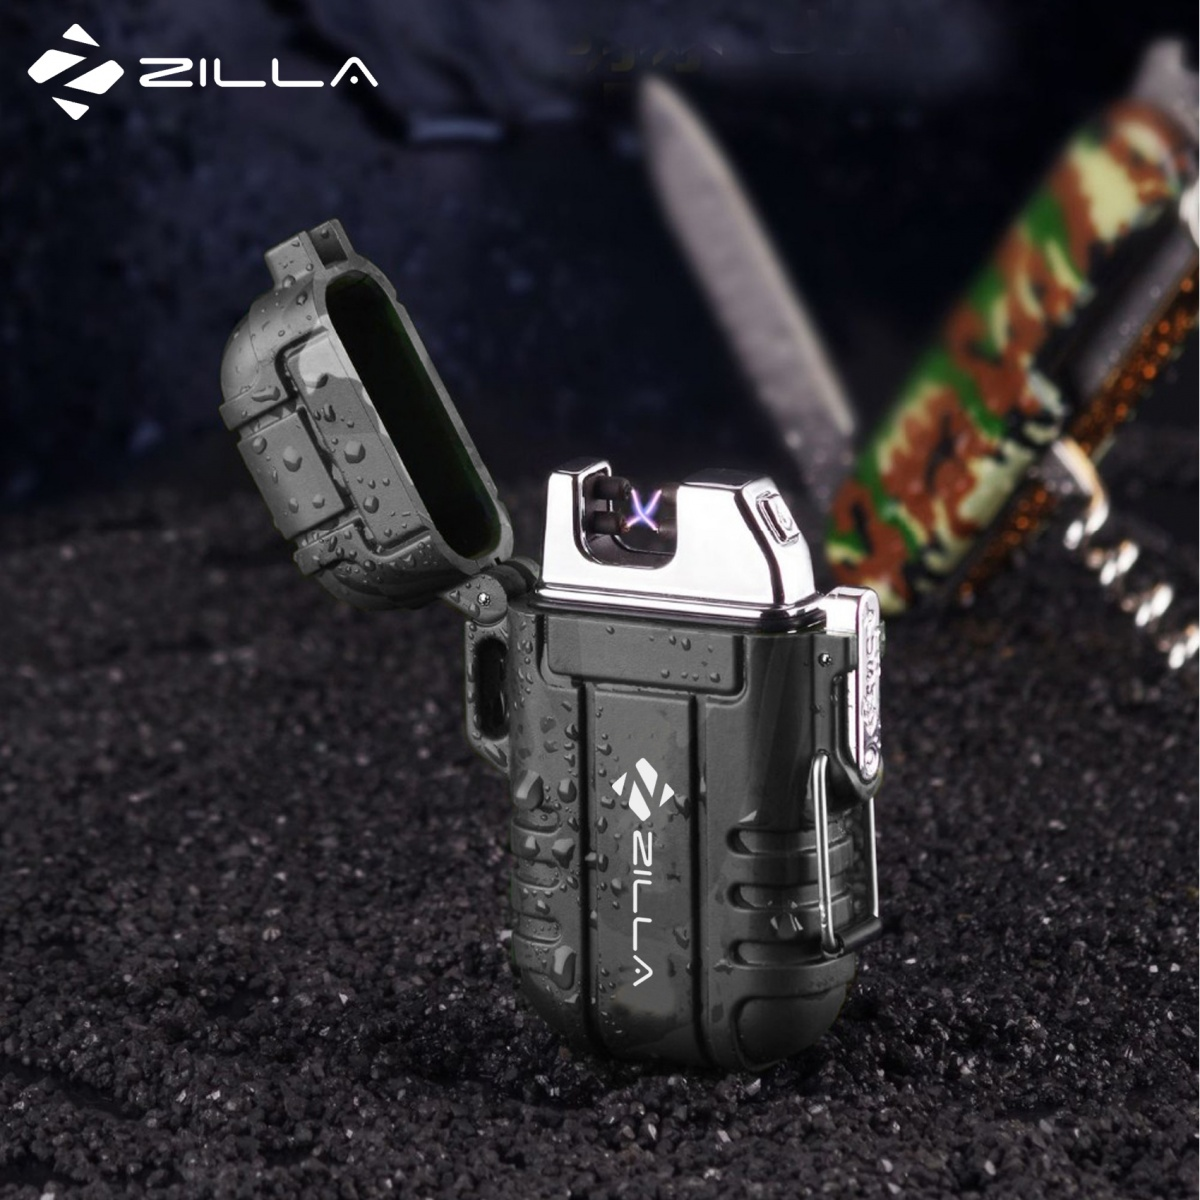 Zilla Dual Arc Micro USB Rechargeable Electric Cigarette Lighter - Black